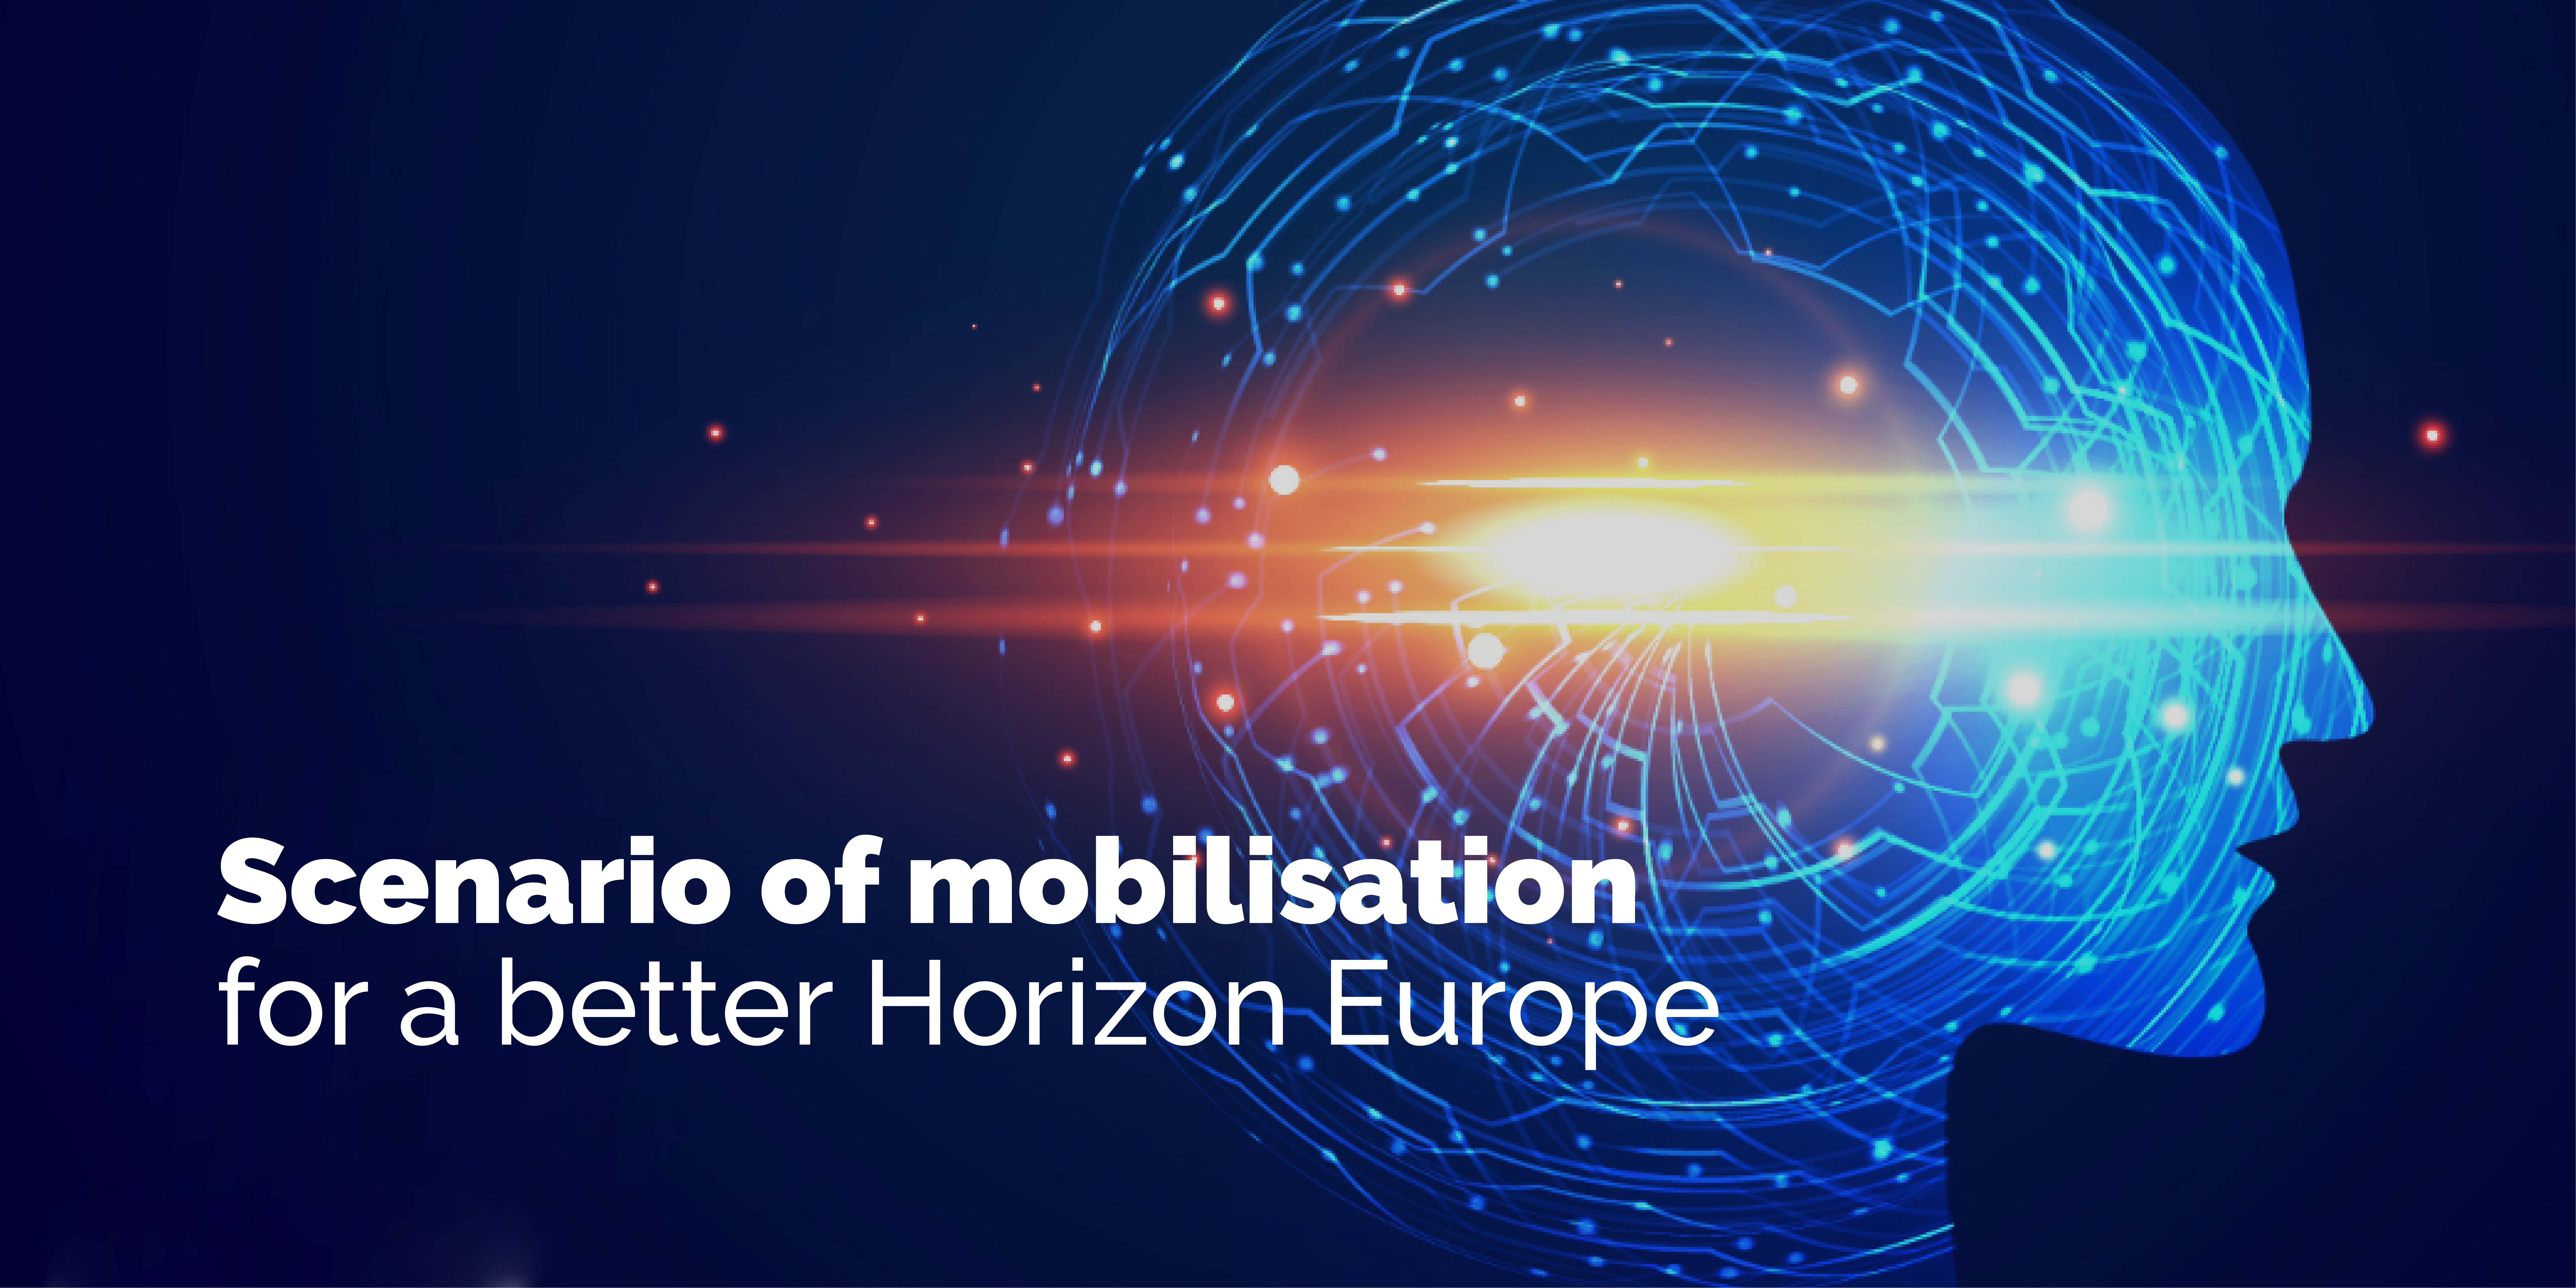 Scenario of mobilisation for a better Horizon Europe